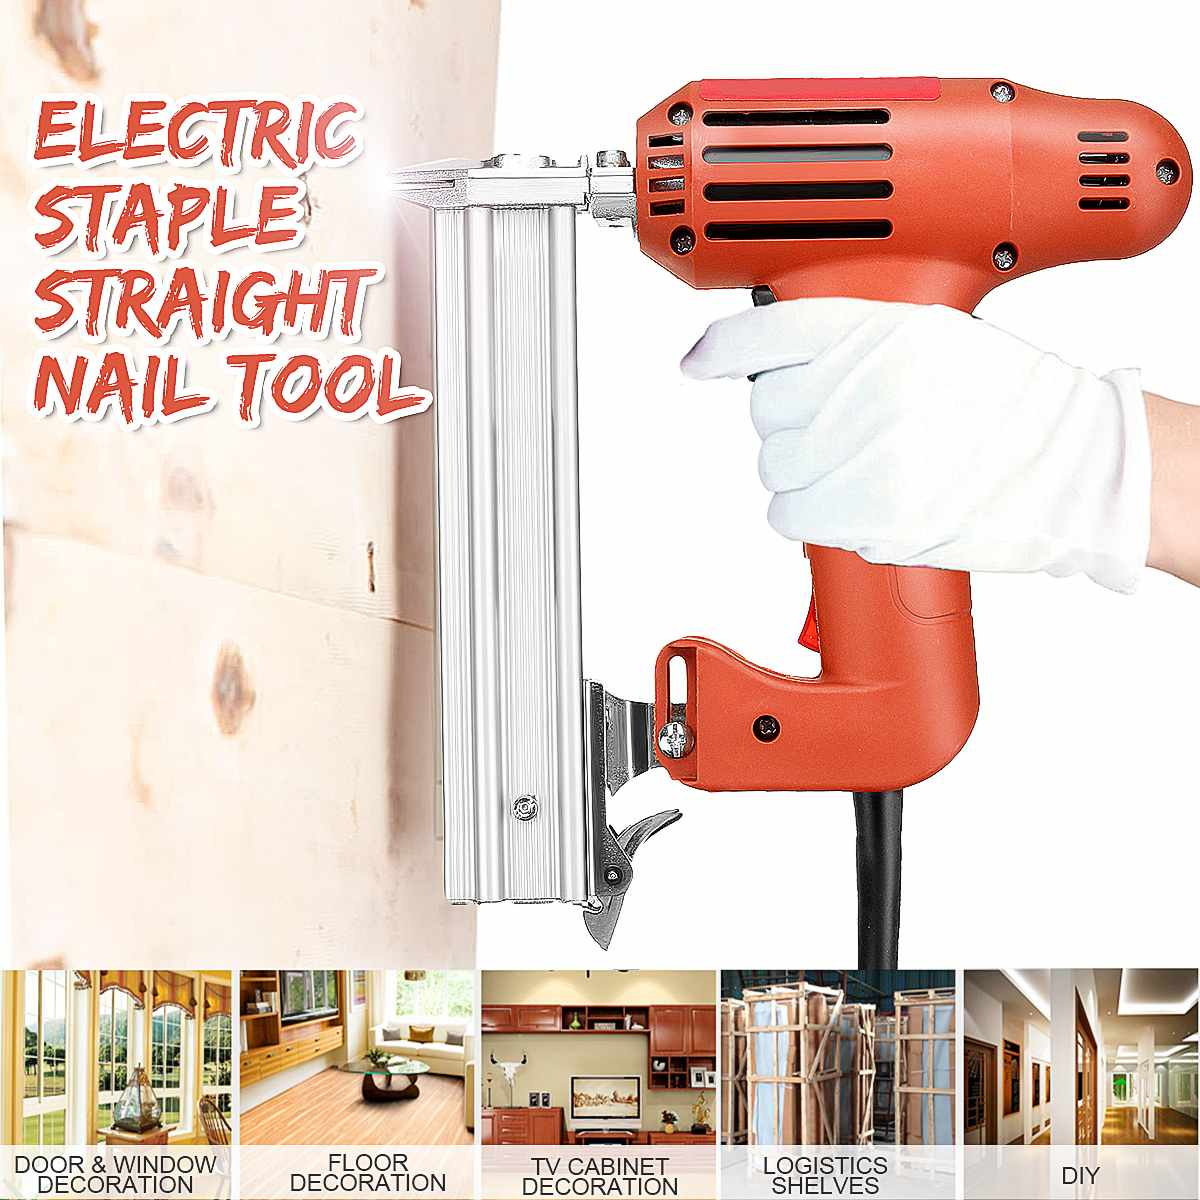 10 30mm Straight Nail Staple Guns 220V 1800W Electric Nailer Woodworking Tool Light Weight Portable 60/min Firing Speed Rate